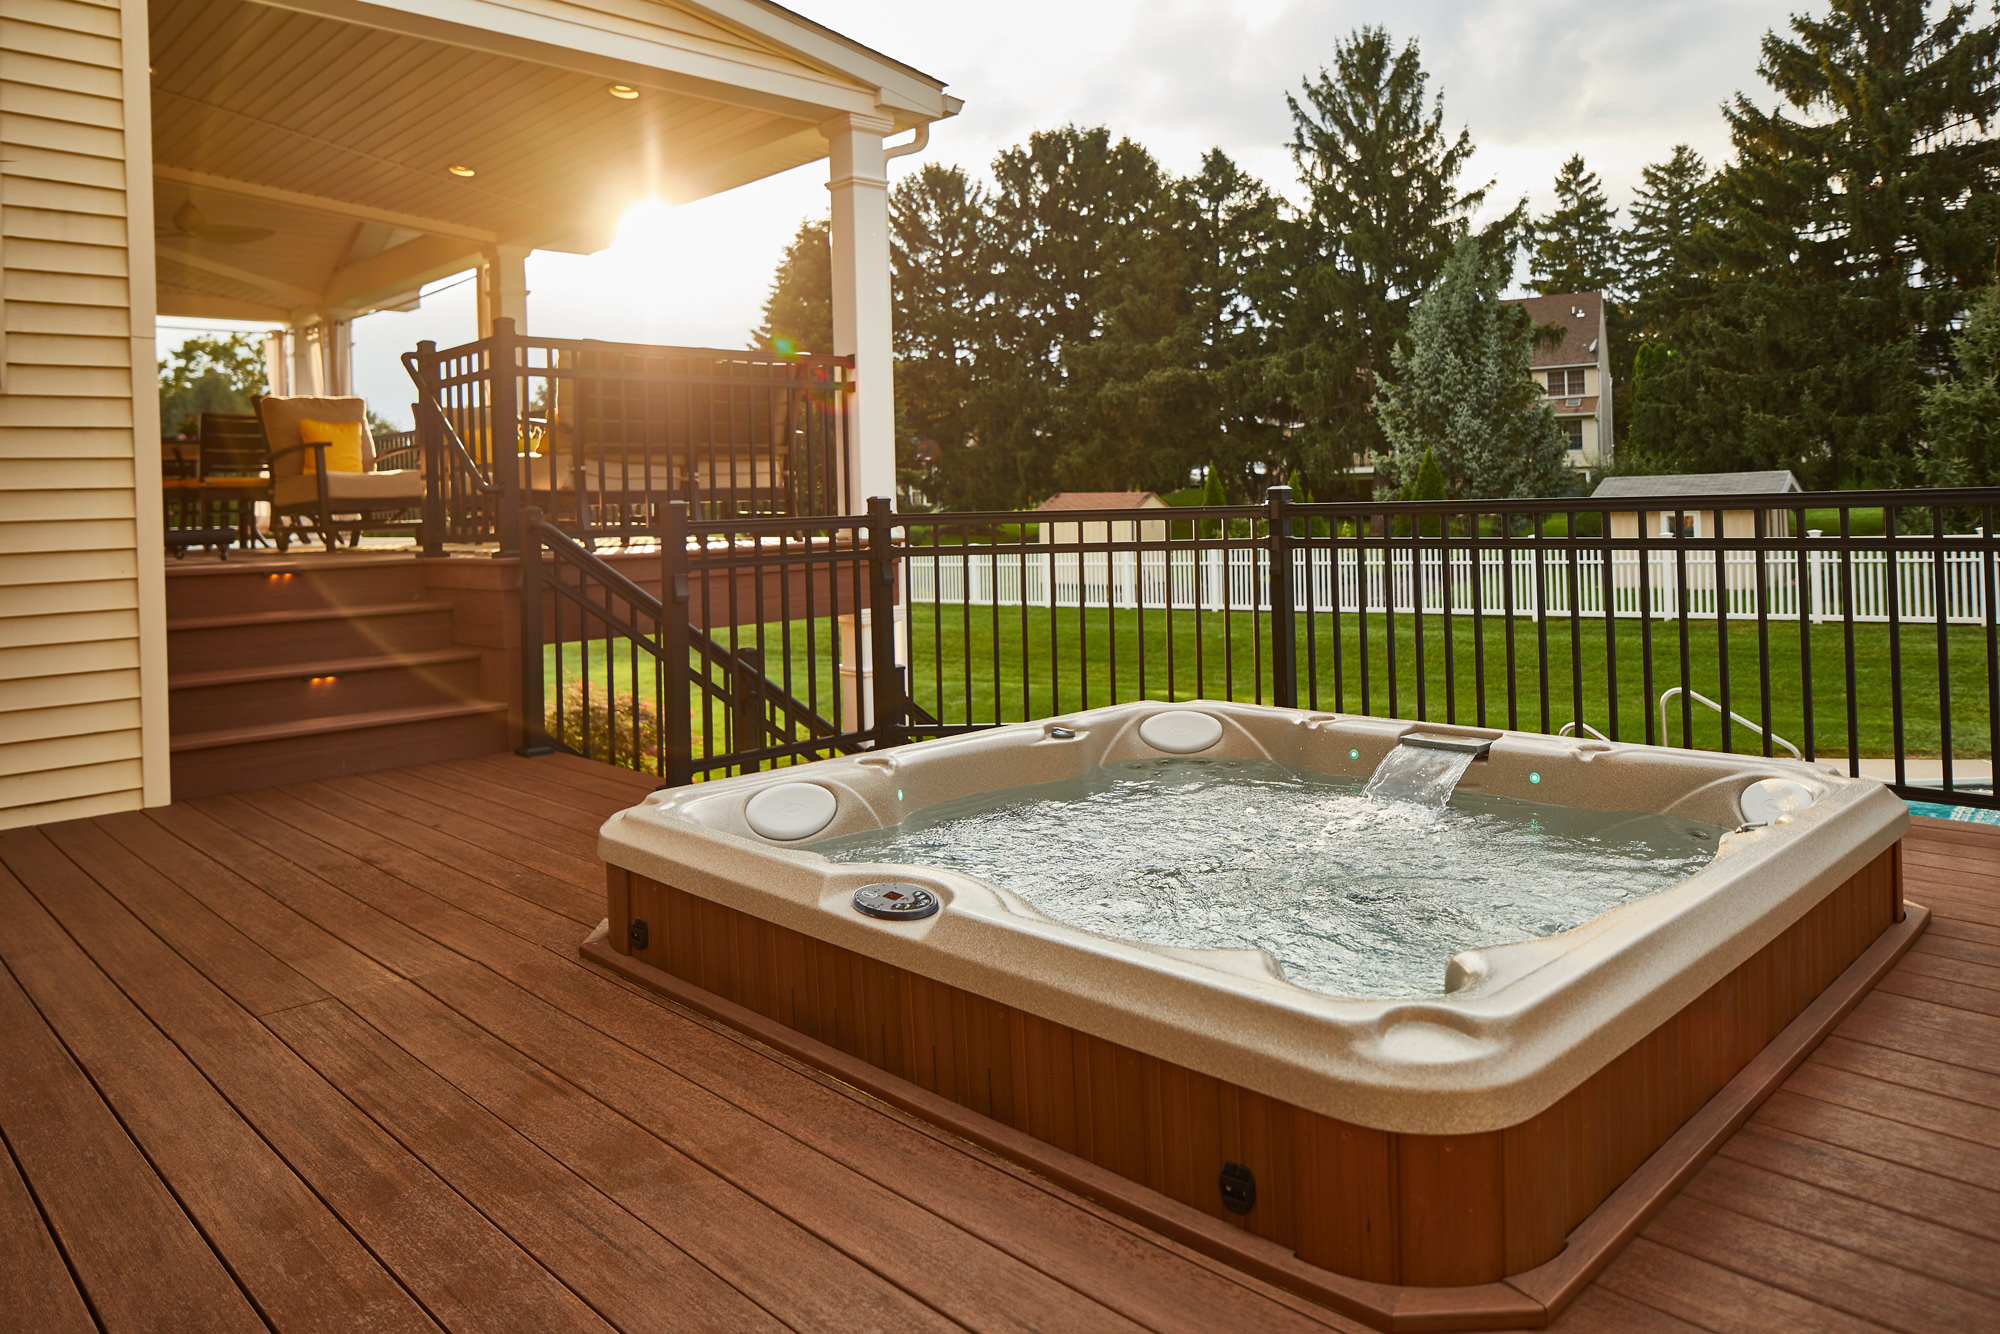 Sinking the hot tub in the deck eliminates the bulk of the feature and keeps the design clean and open!